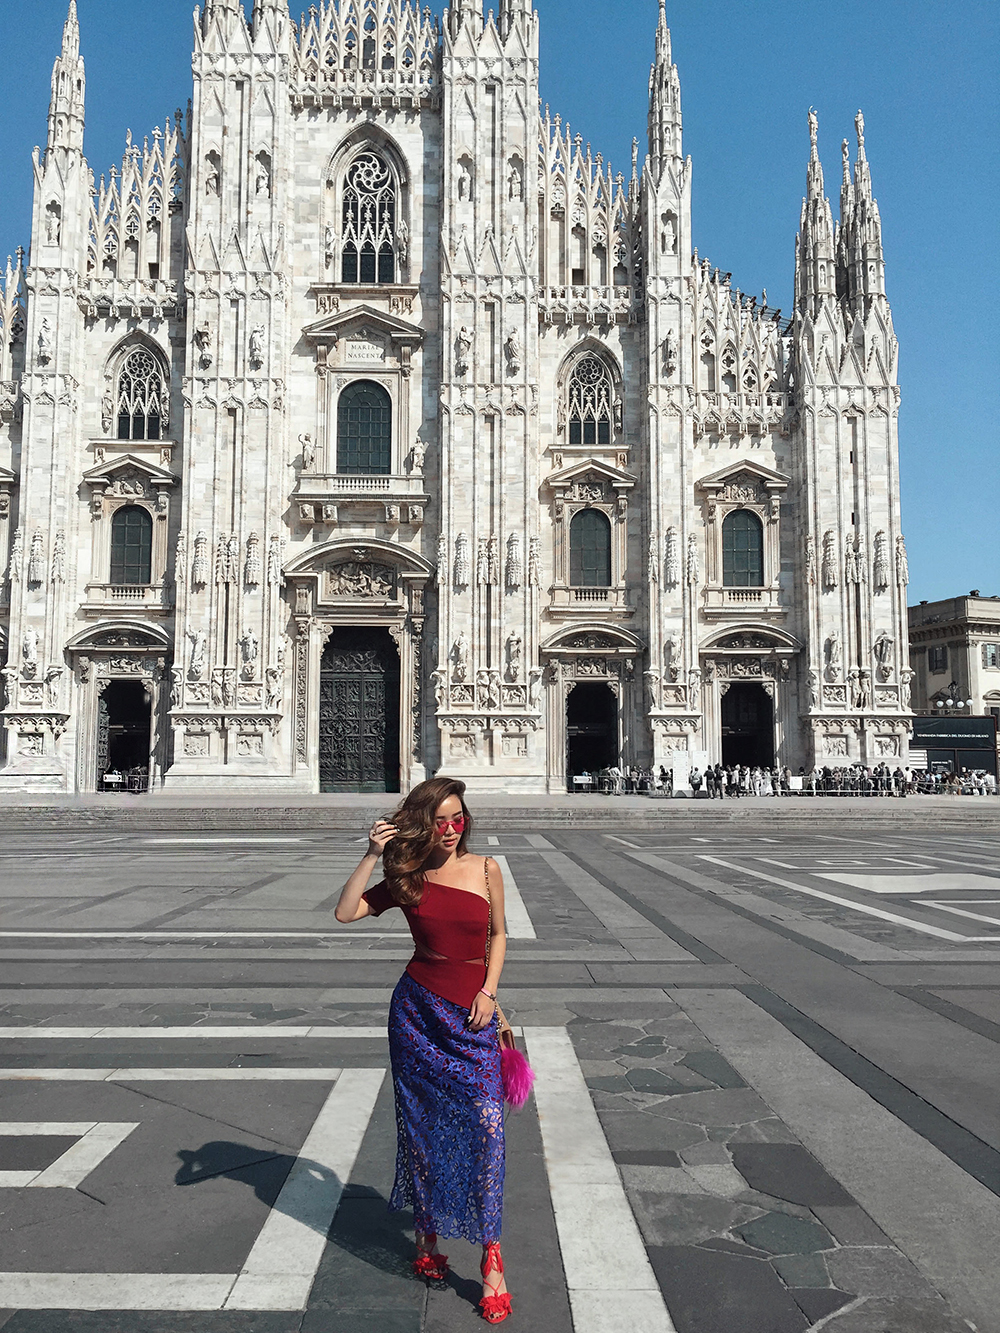 willabelle-ong-paledivision-street-style-fashion-travel-lifestyle-blog-australia-singapore-blogger-italy-three-floor-lace-dress-review-four-seasons-hotel-milan-duomo-cathedral